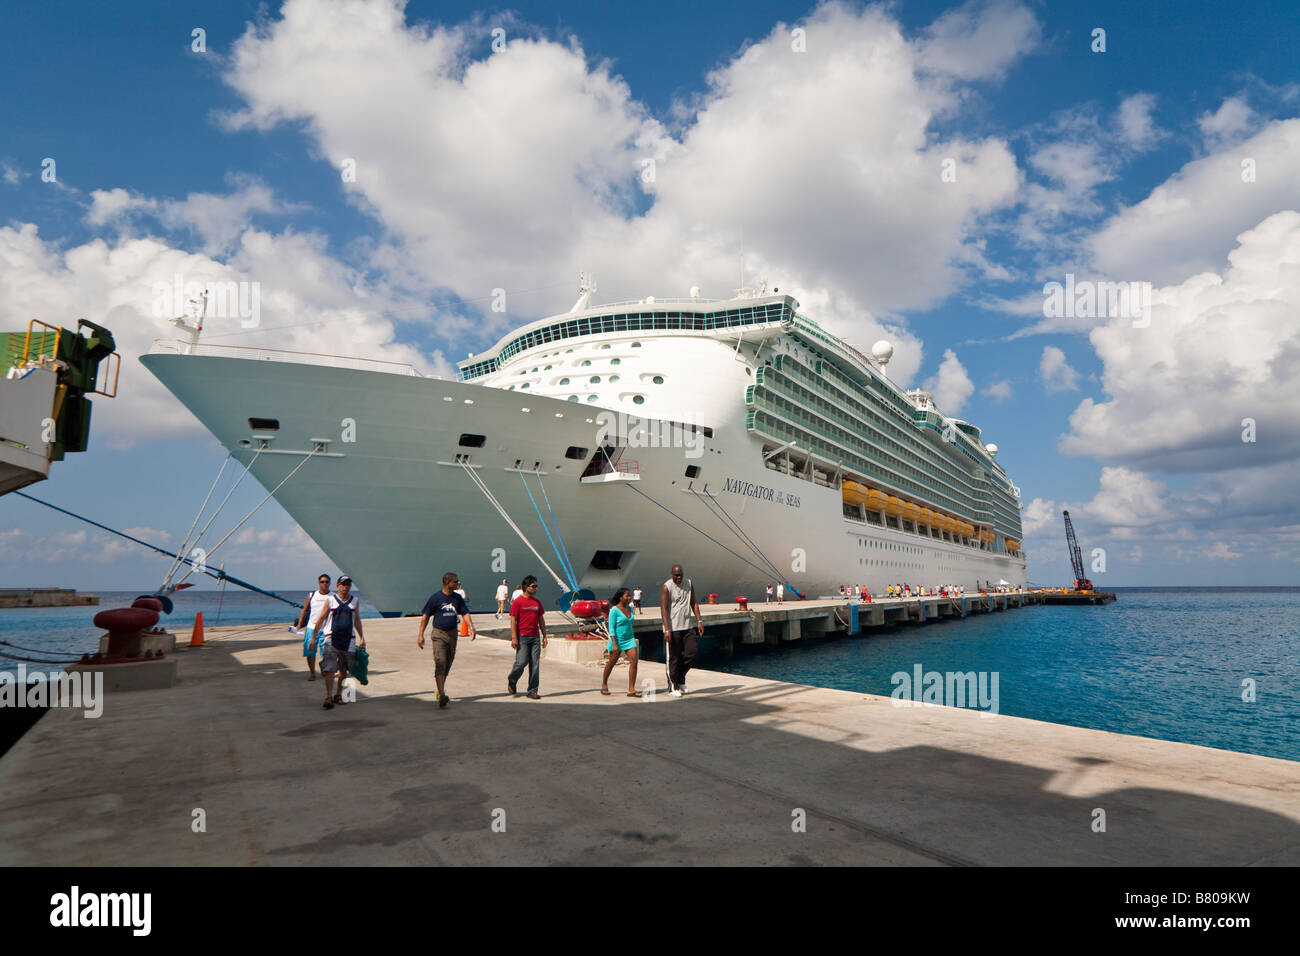 Passengers disembark from Royal Caribbean Navigator of the Seas cruise ship docked at port in Cozumel, Mexico - Stock Image